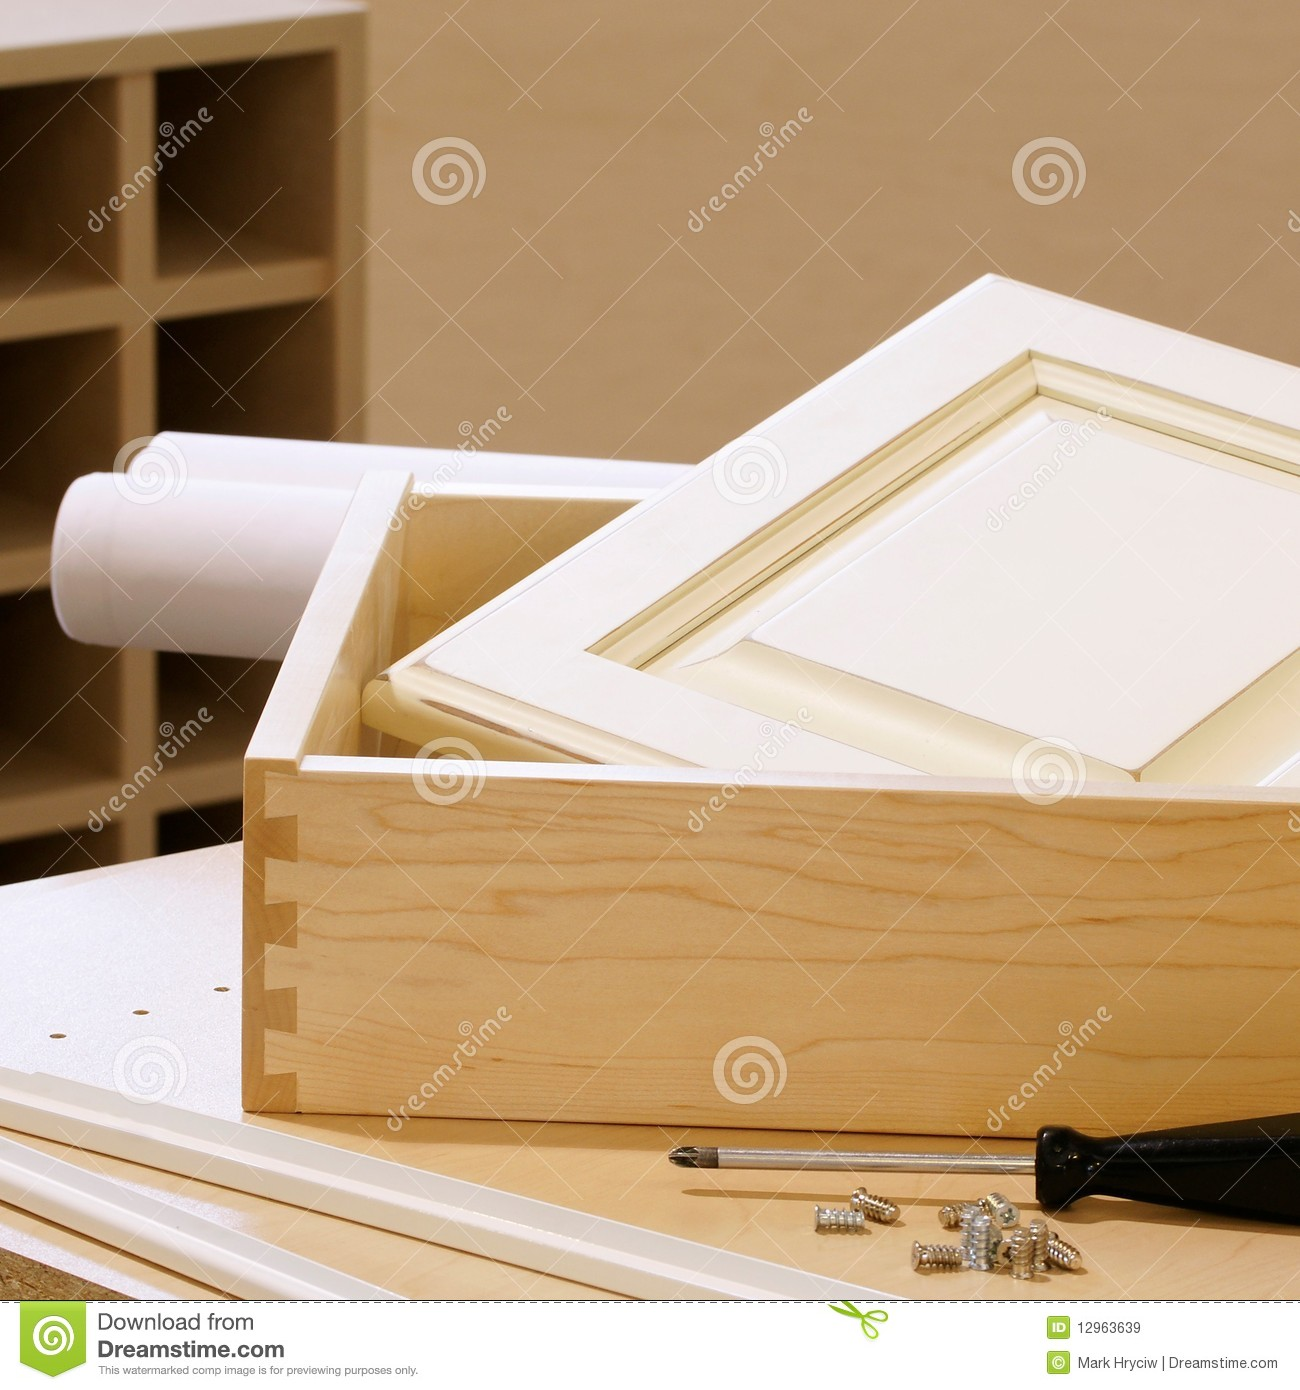 Building Kitchen Cabinets Video Woodworking Cabinet Construction Stock Image Image 12963639